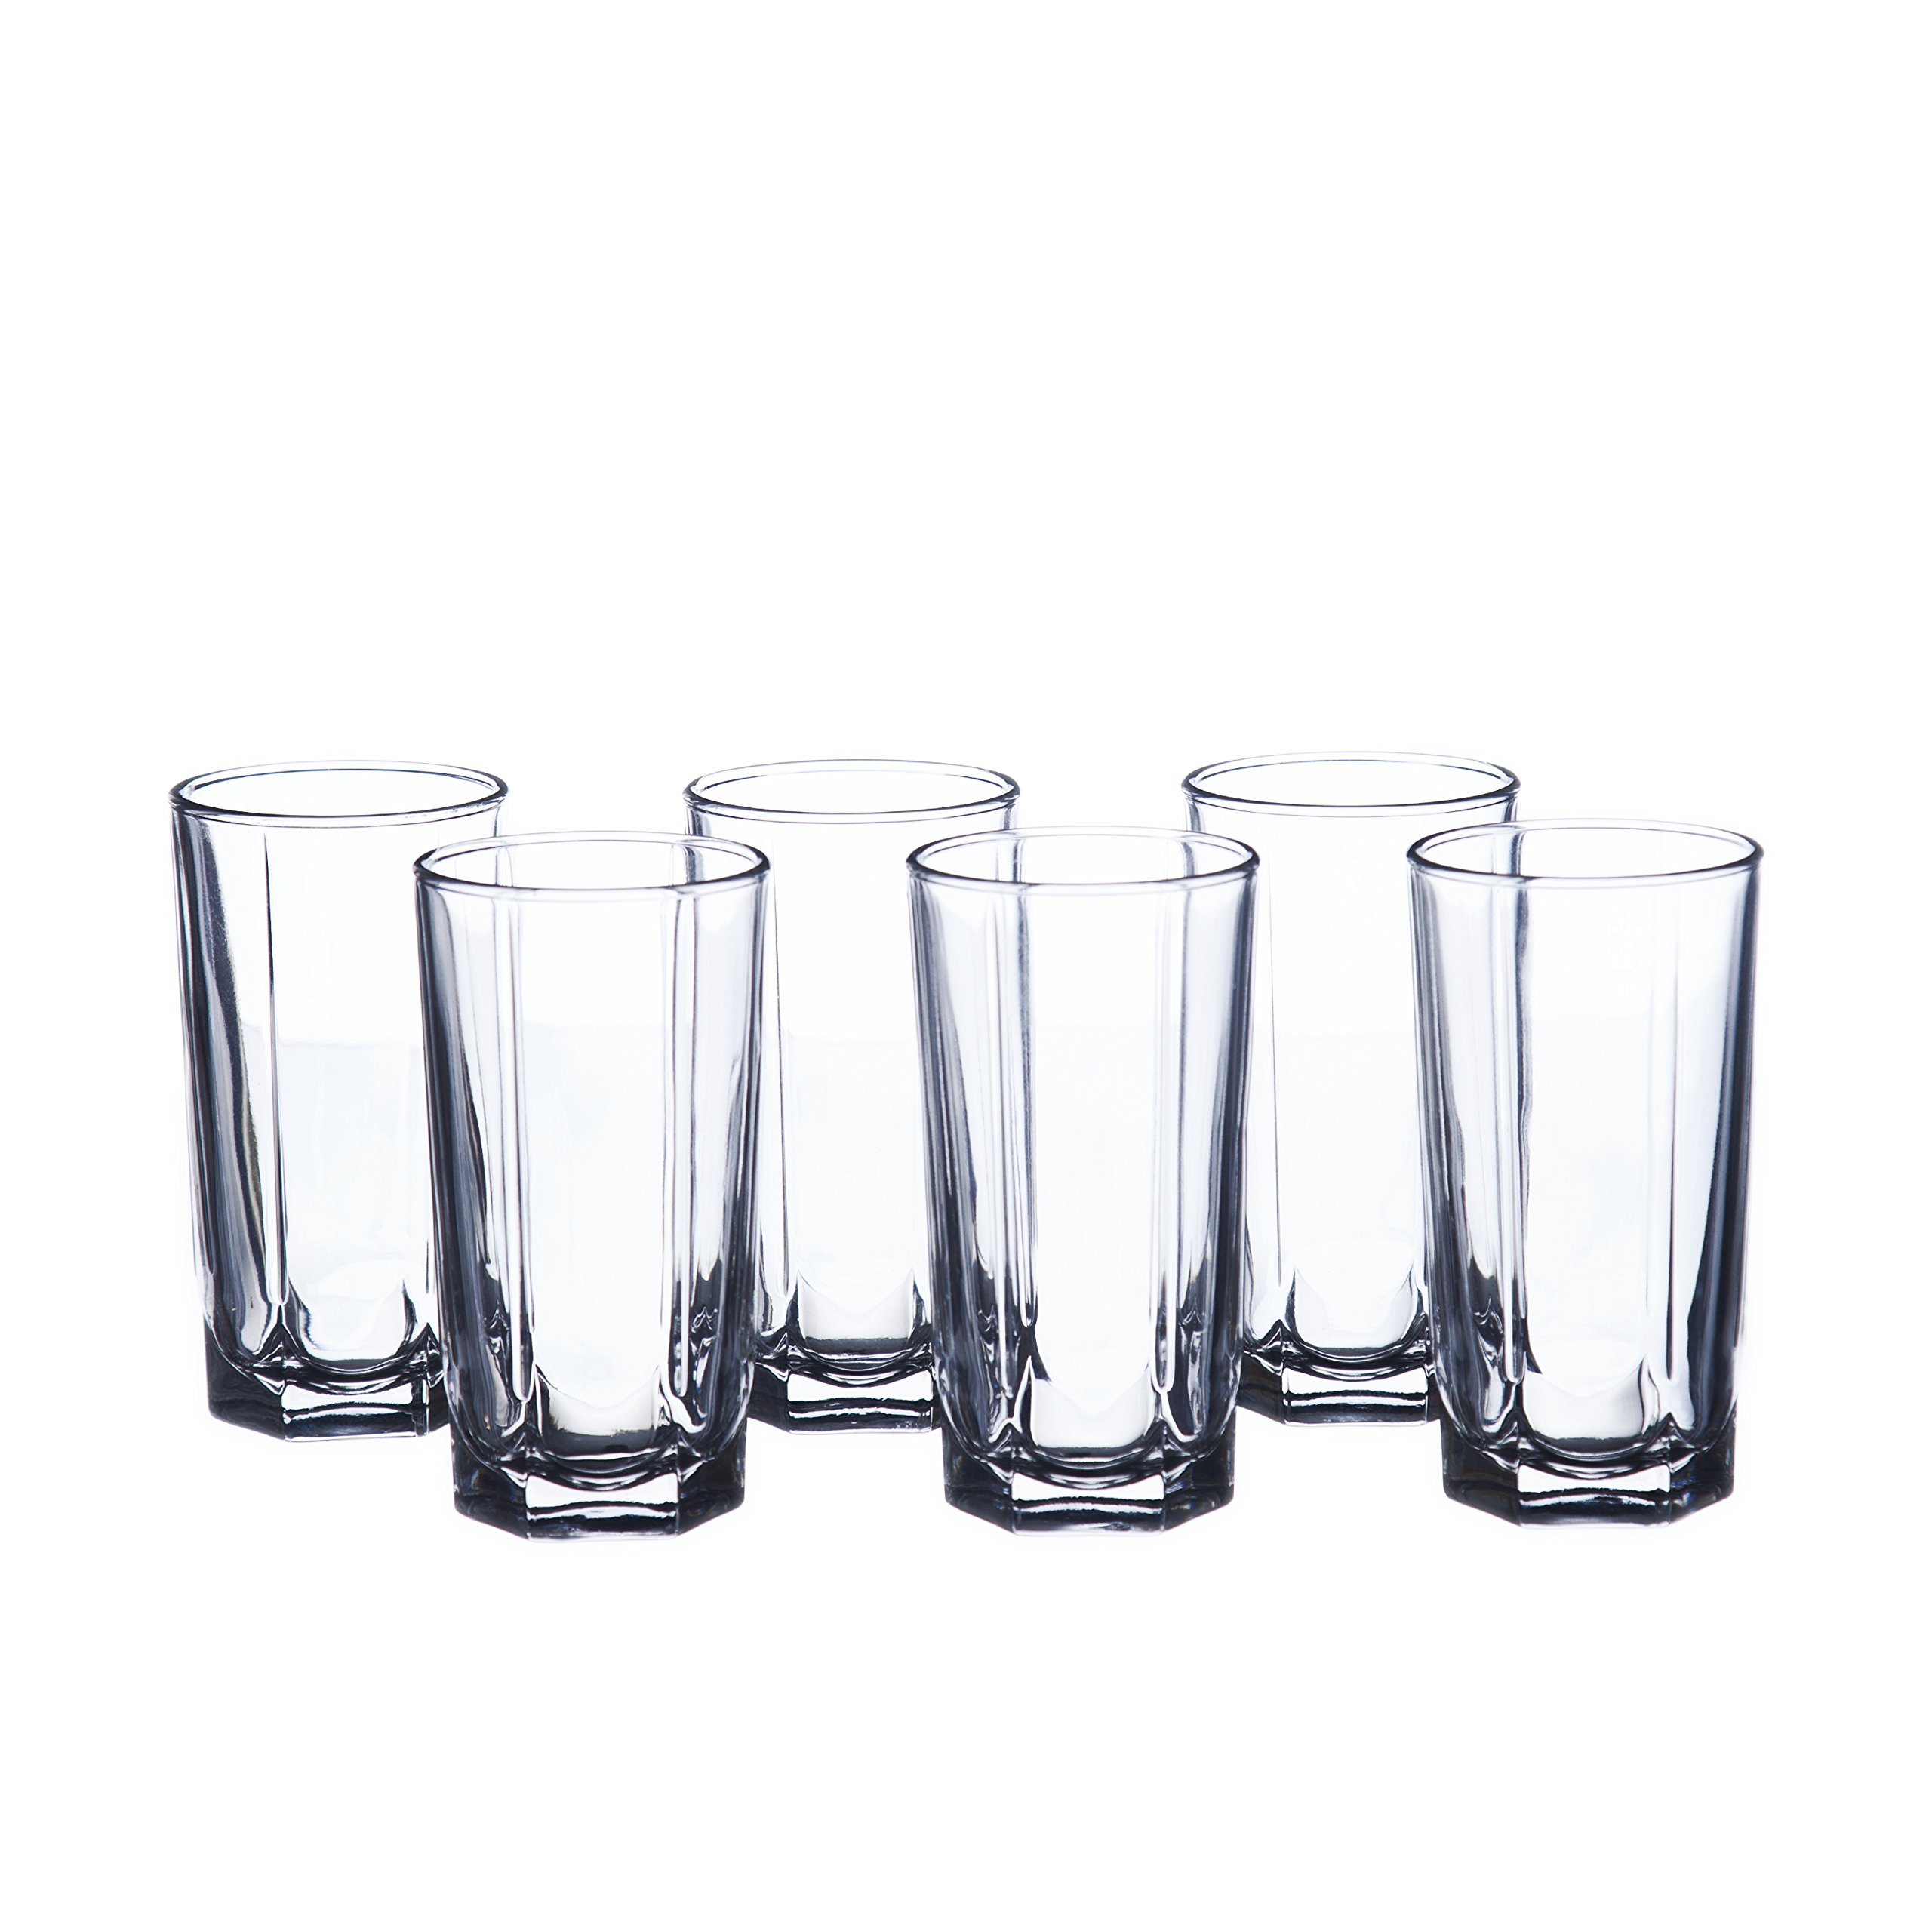 Water/Beverage 6 oz. (180 ml) Highball Glasses Set, Faceted, Durable Tempered Glass (12) by Smart And Cozy